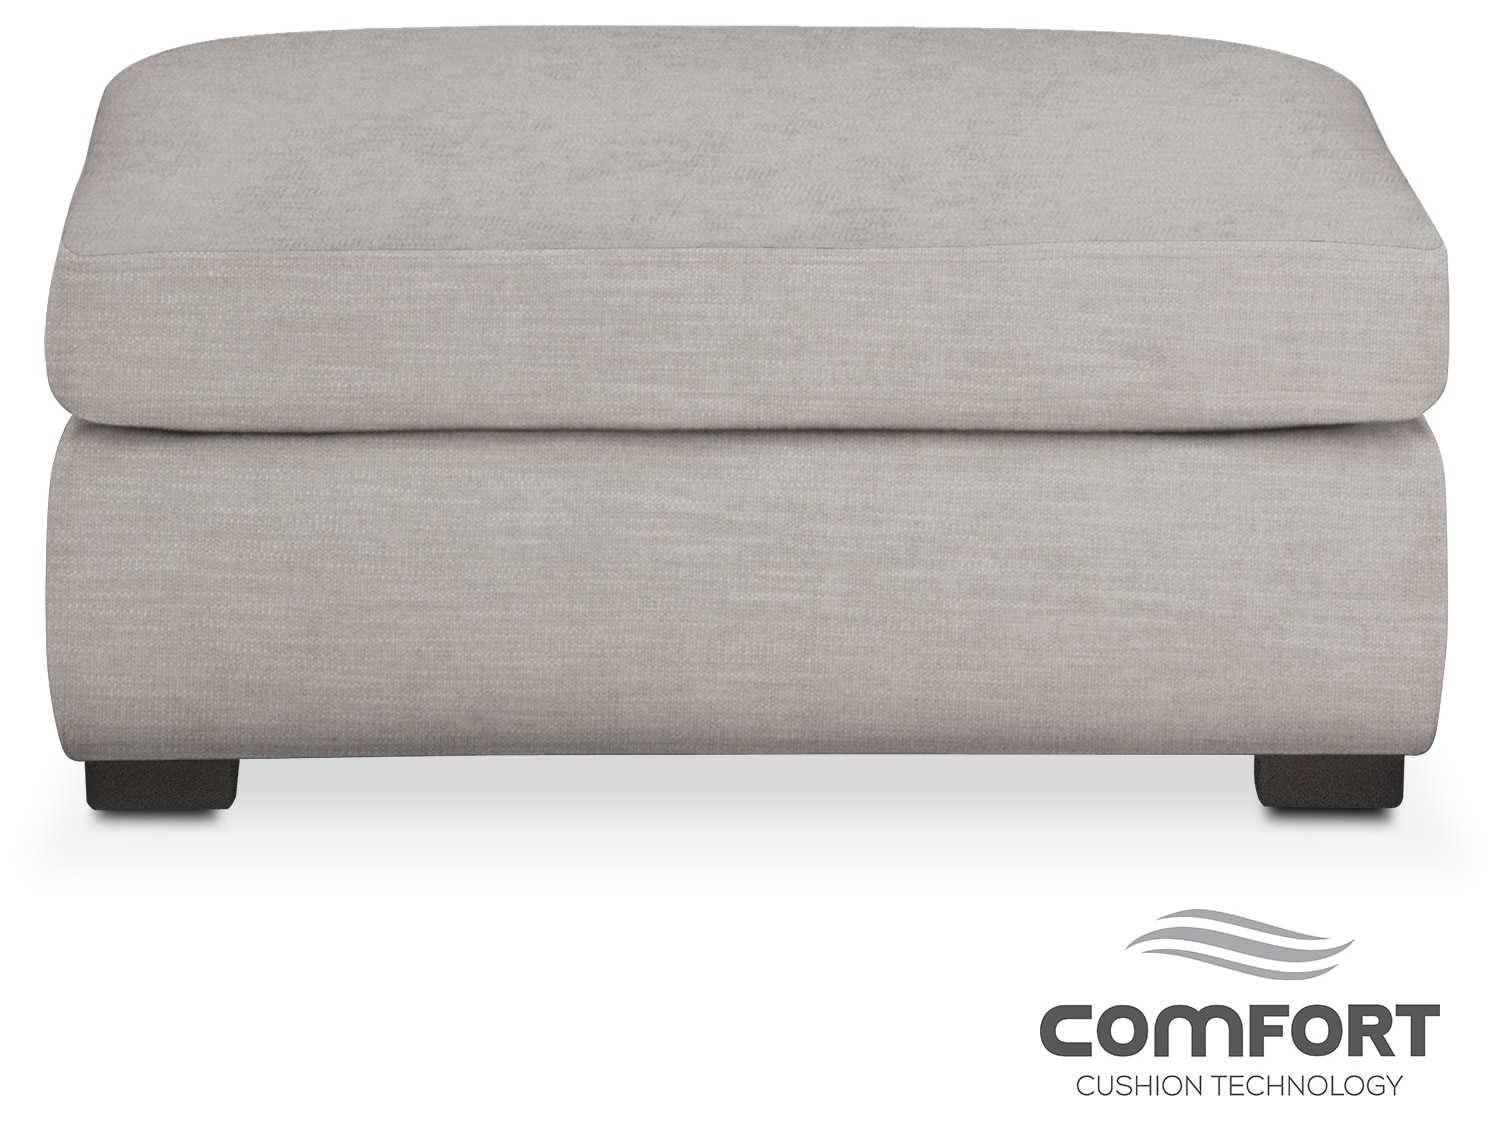 Living Room Furniture - Asher Comfort Ottoman - Dudley Gray